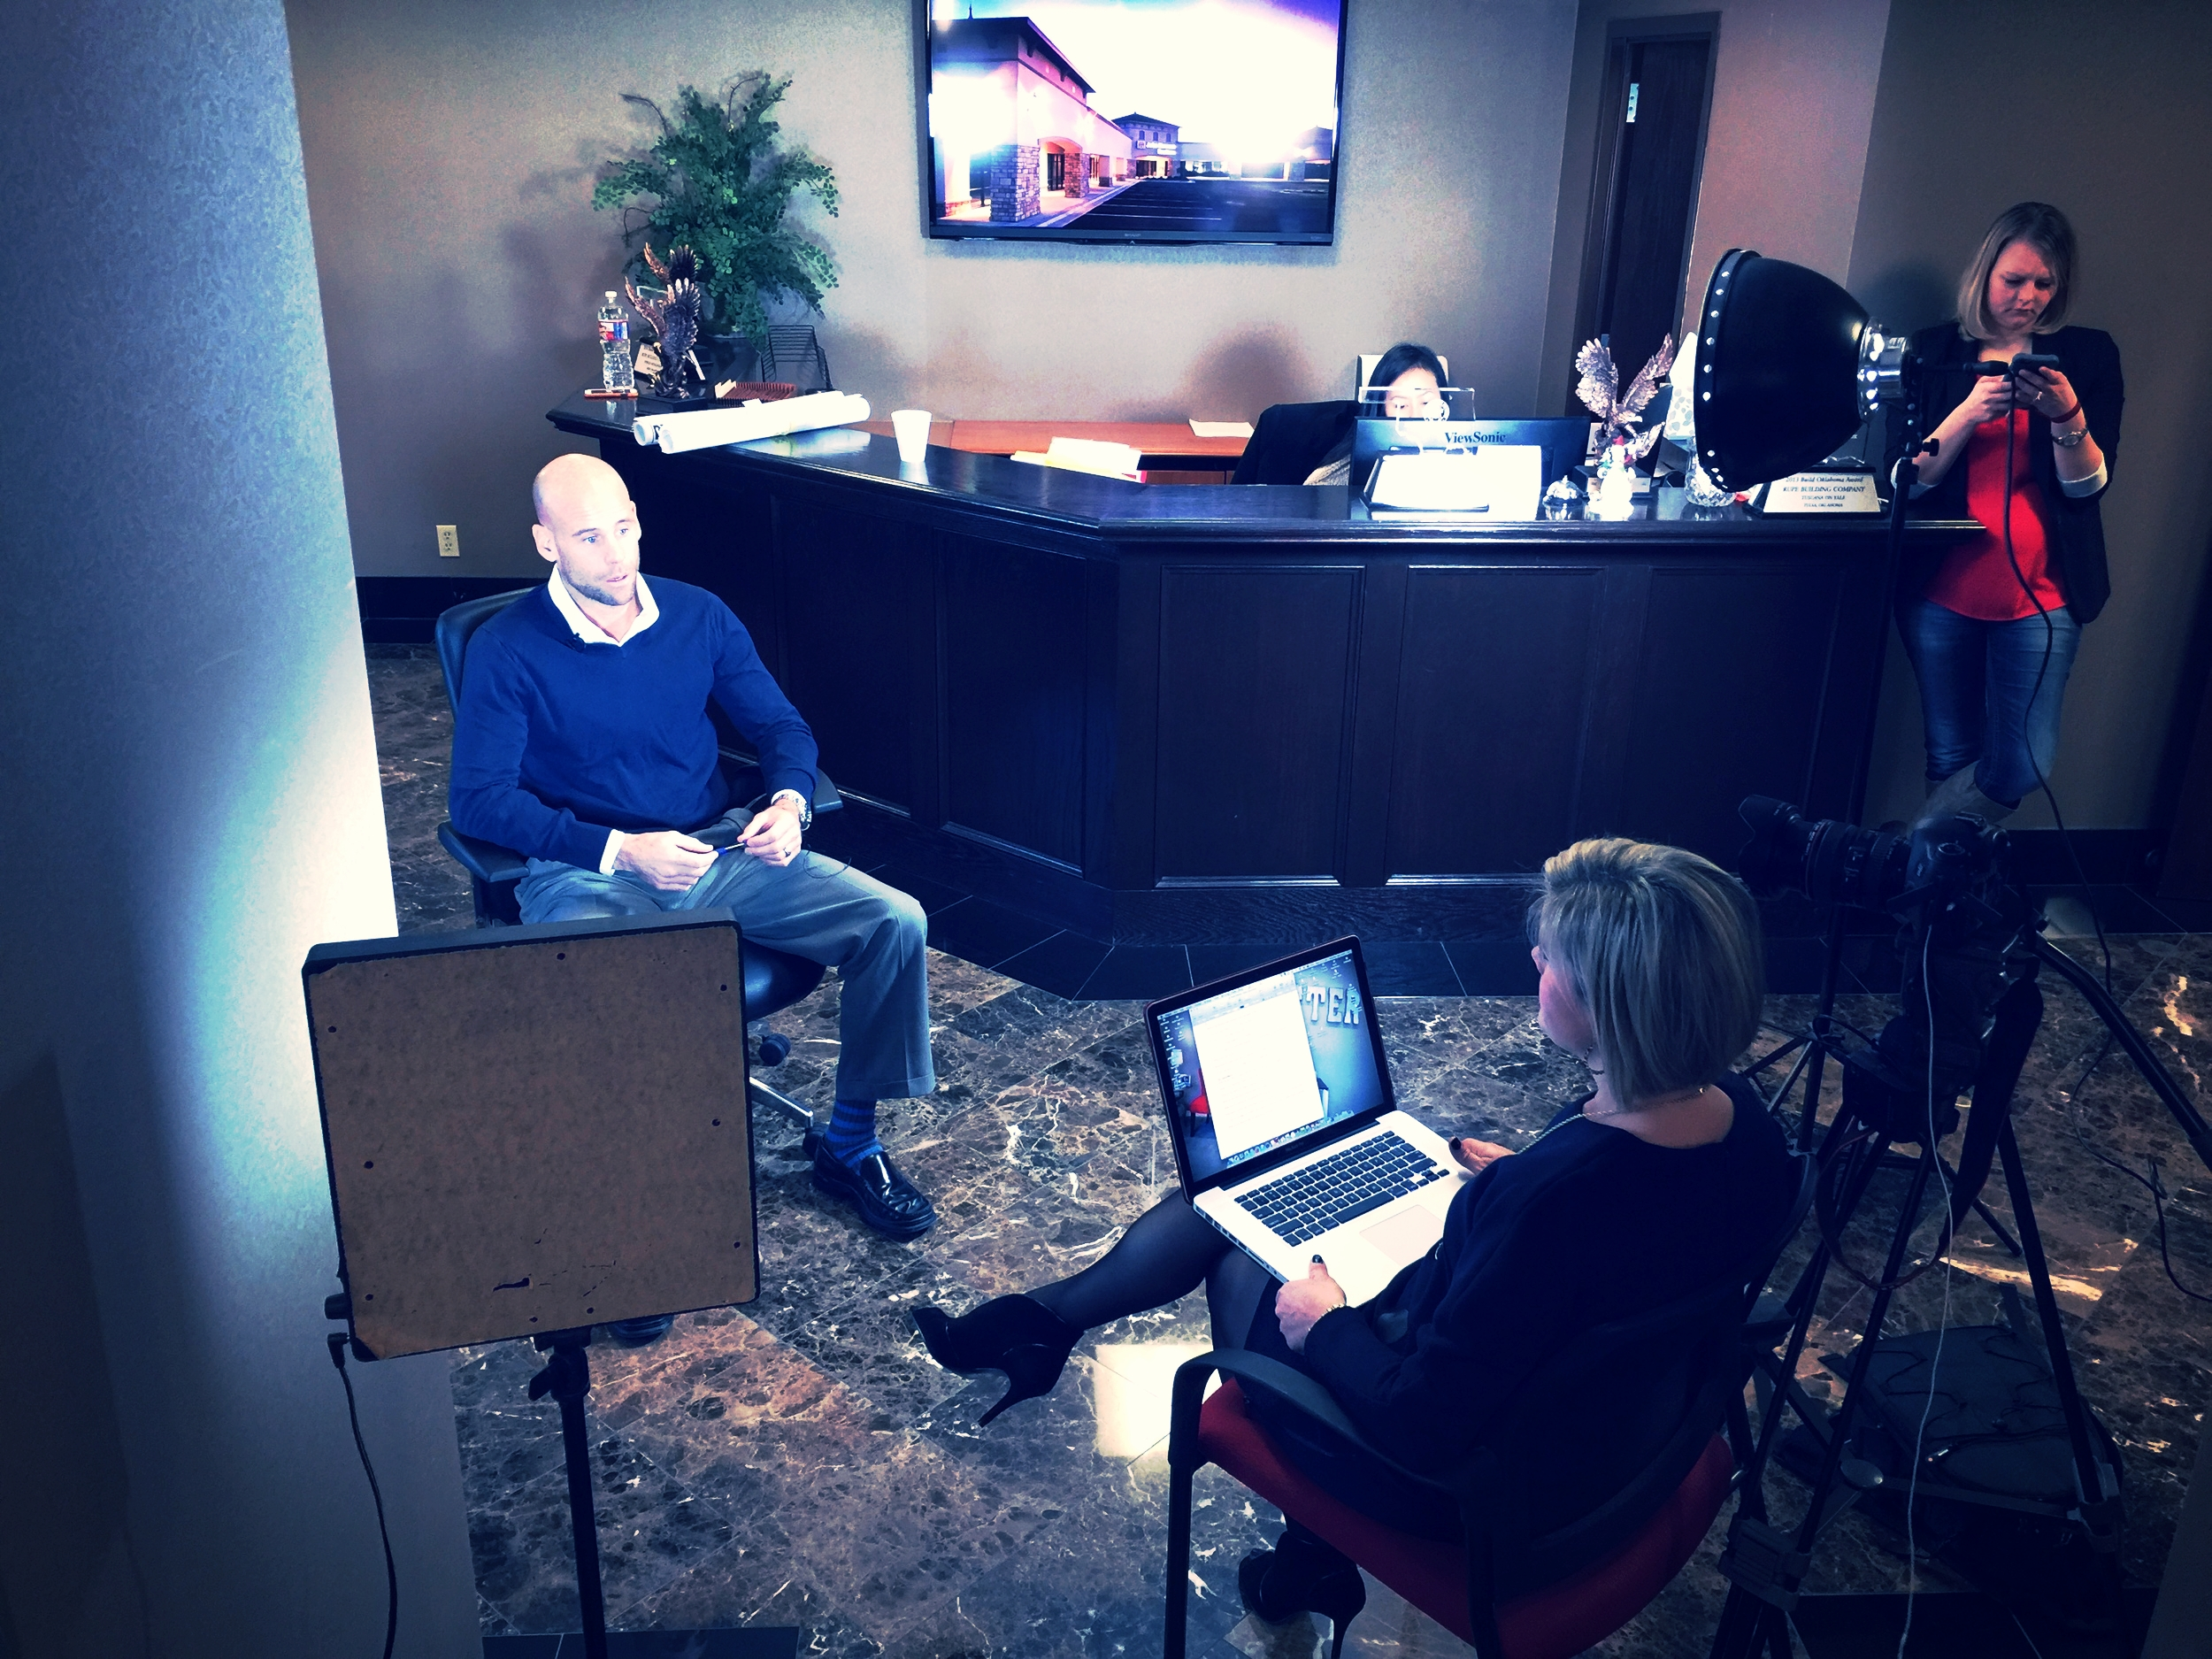 CHATTER-MARKETING-RECORDING-FOOTAGE-FOR-EMPLOYEE-TESTIMONIAL-VIDEO-FOR-RICH-AND-CARTMILL.JPG